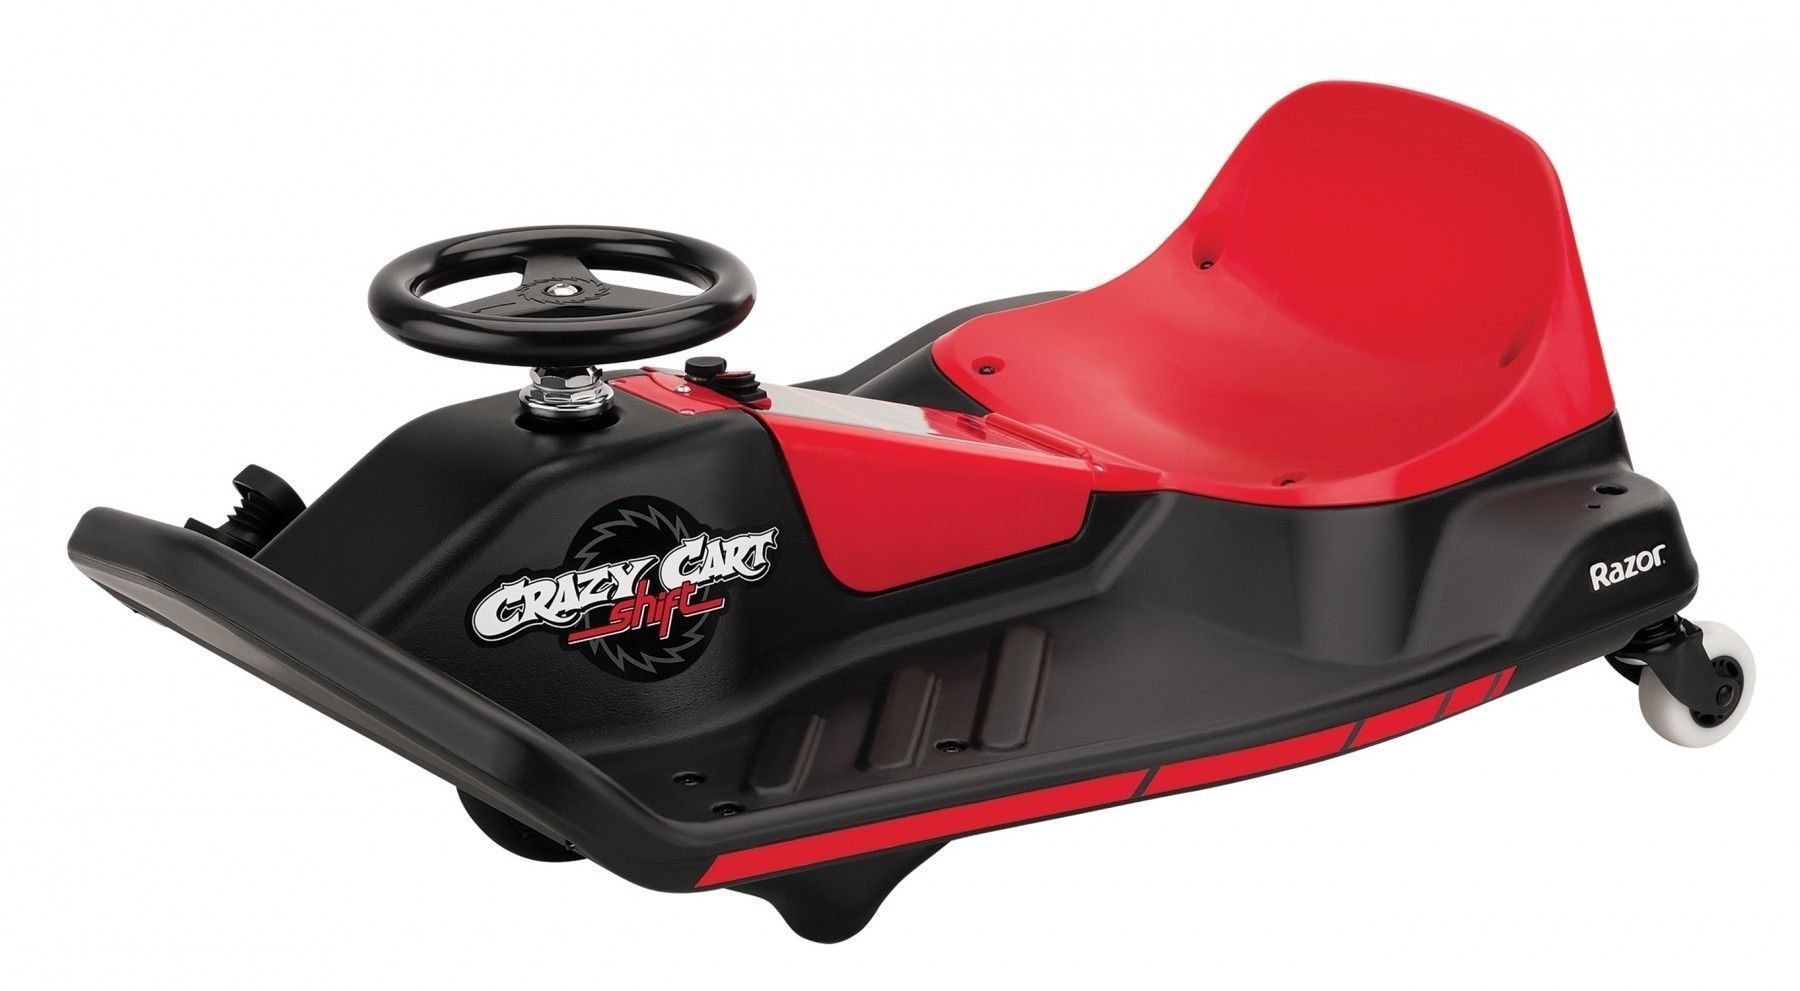 Product Review: Razor Crazy Cart Shift Electric Go Kart